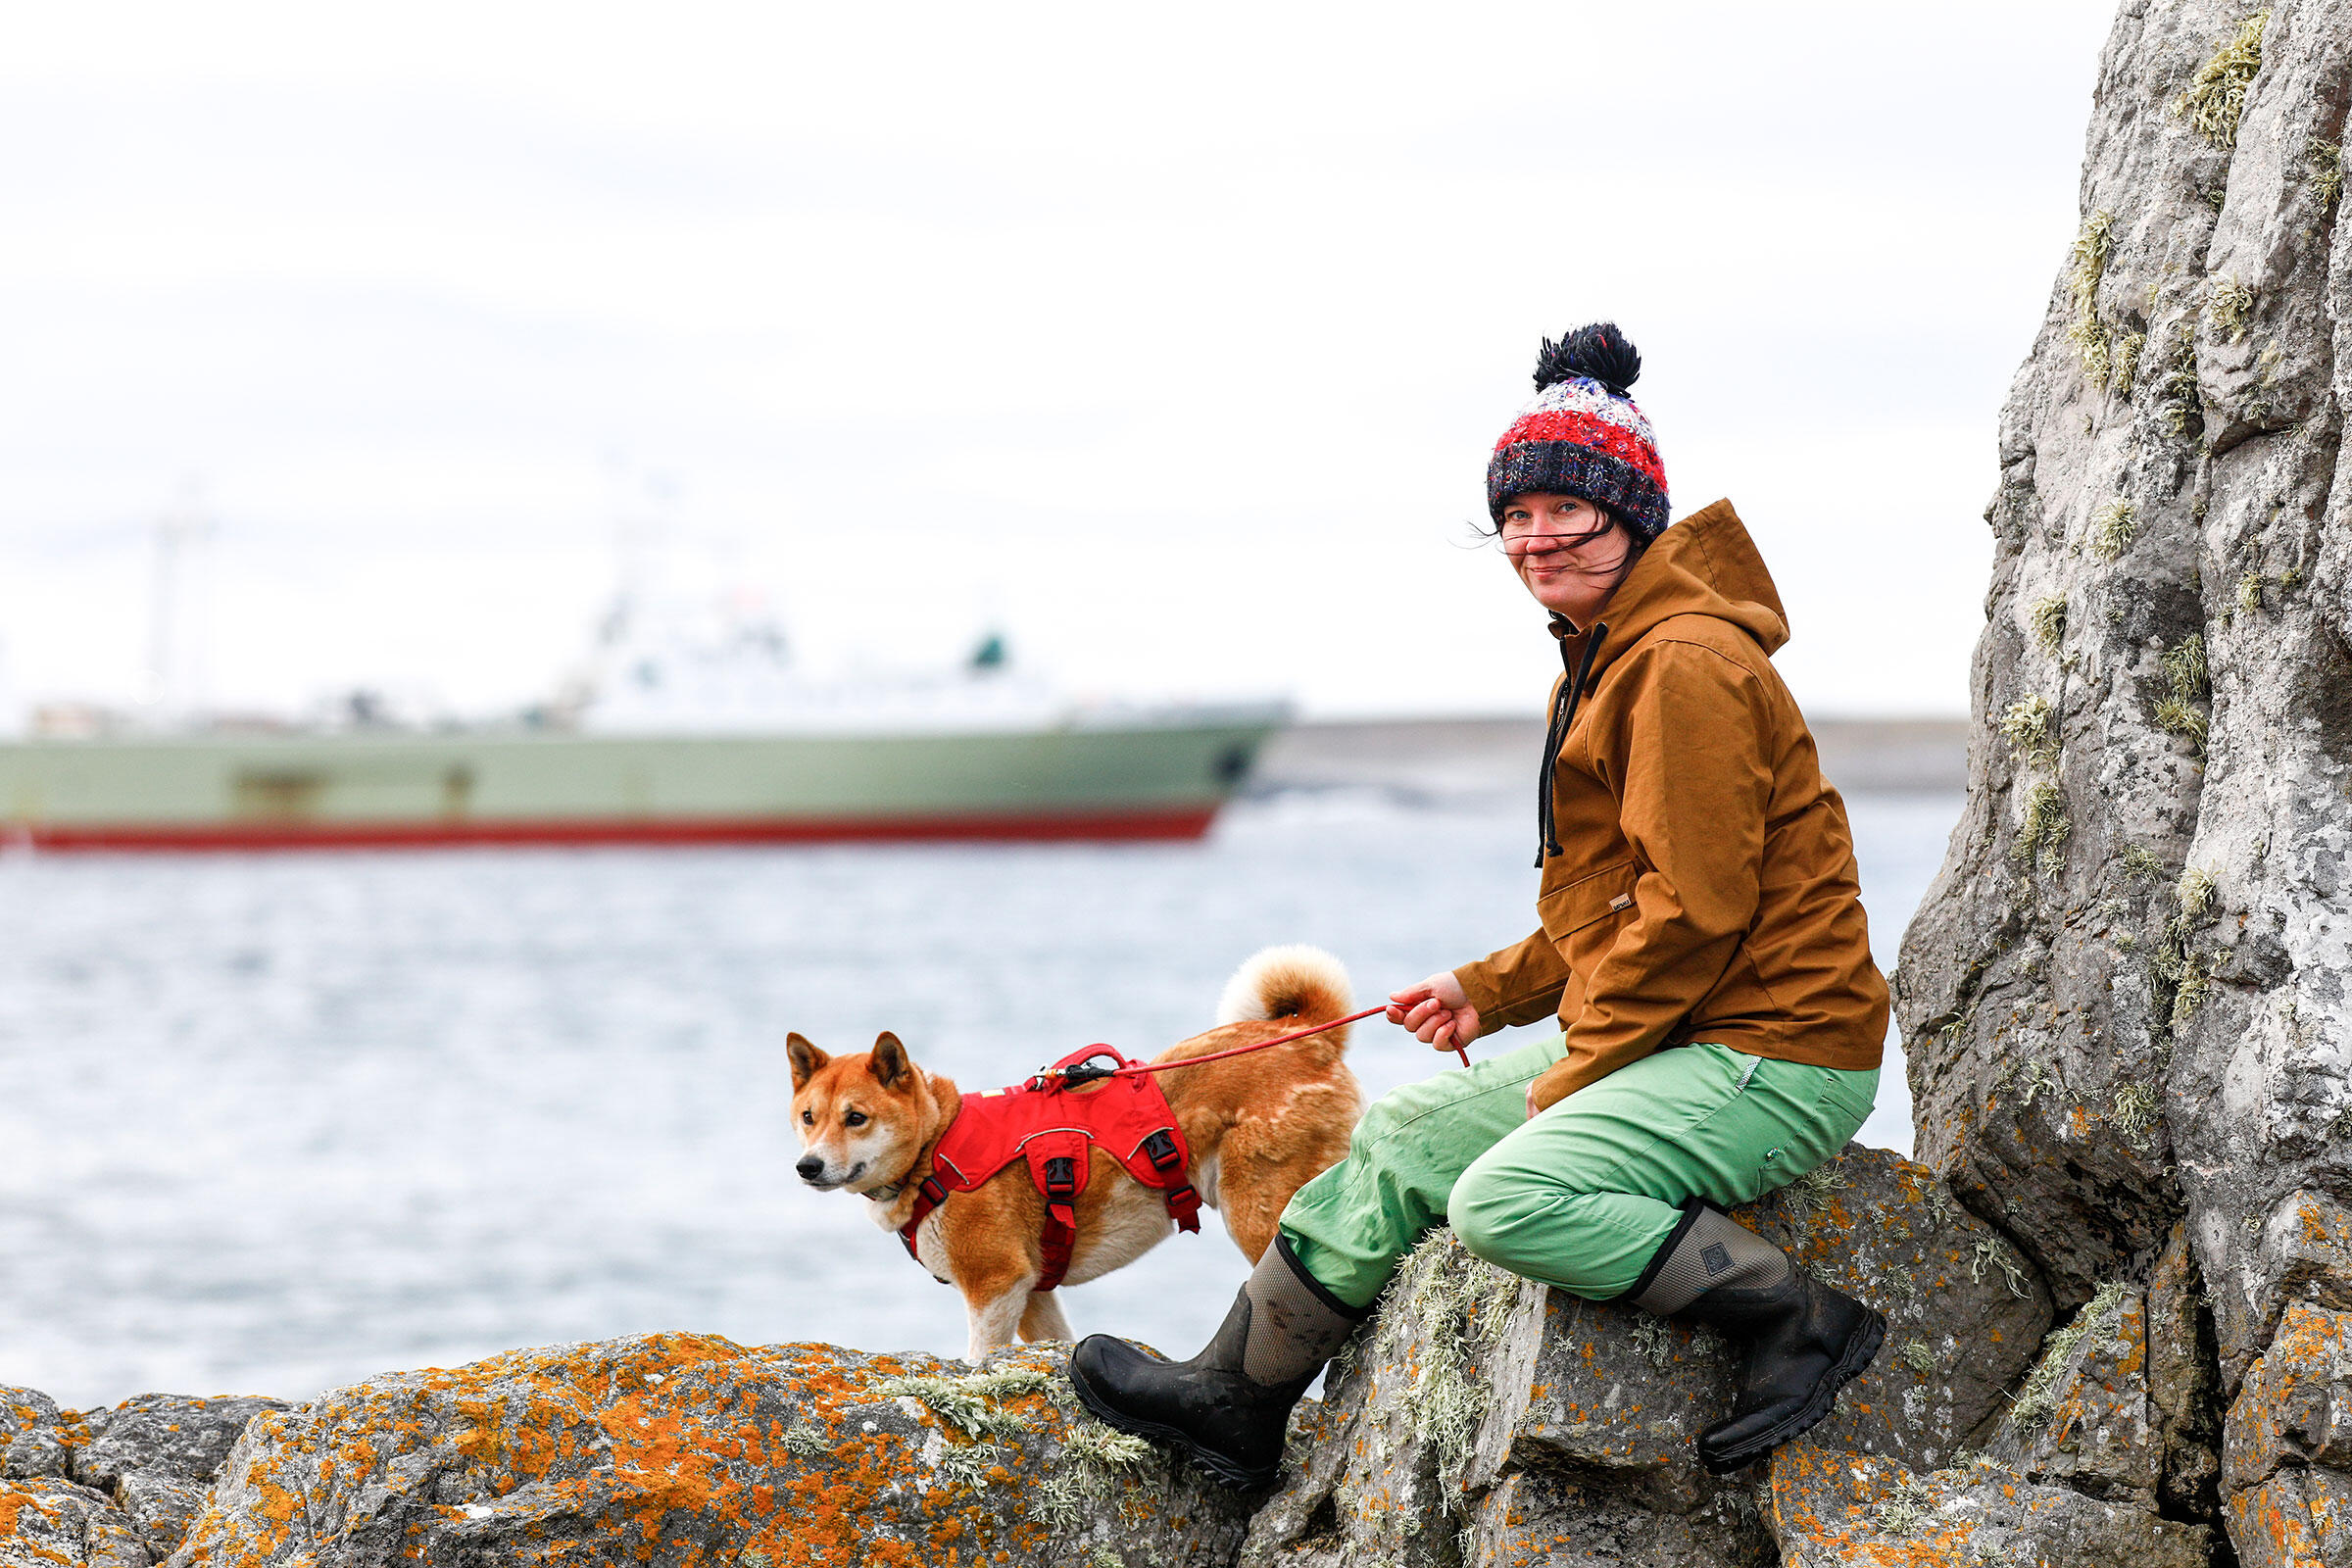 A woman in green pants, a brown coat, and red, brown, and white winter cap sits on a large rock with a sheer rock face to her right. She holds a leash attached to an orange and white dog standing on rocks mottled with orange lichens. A ship floats in the background.